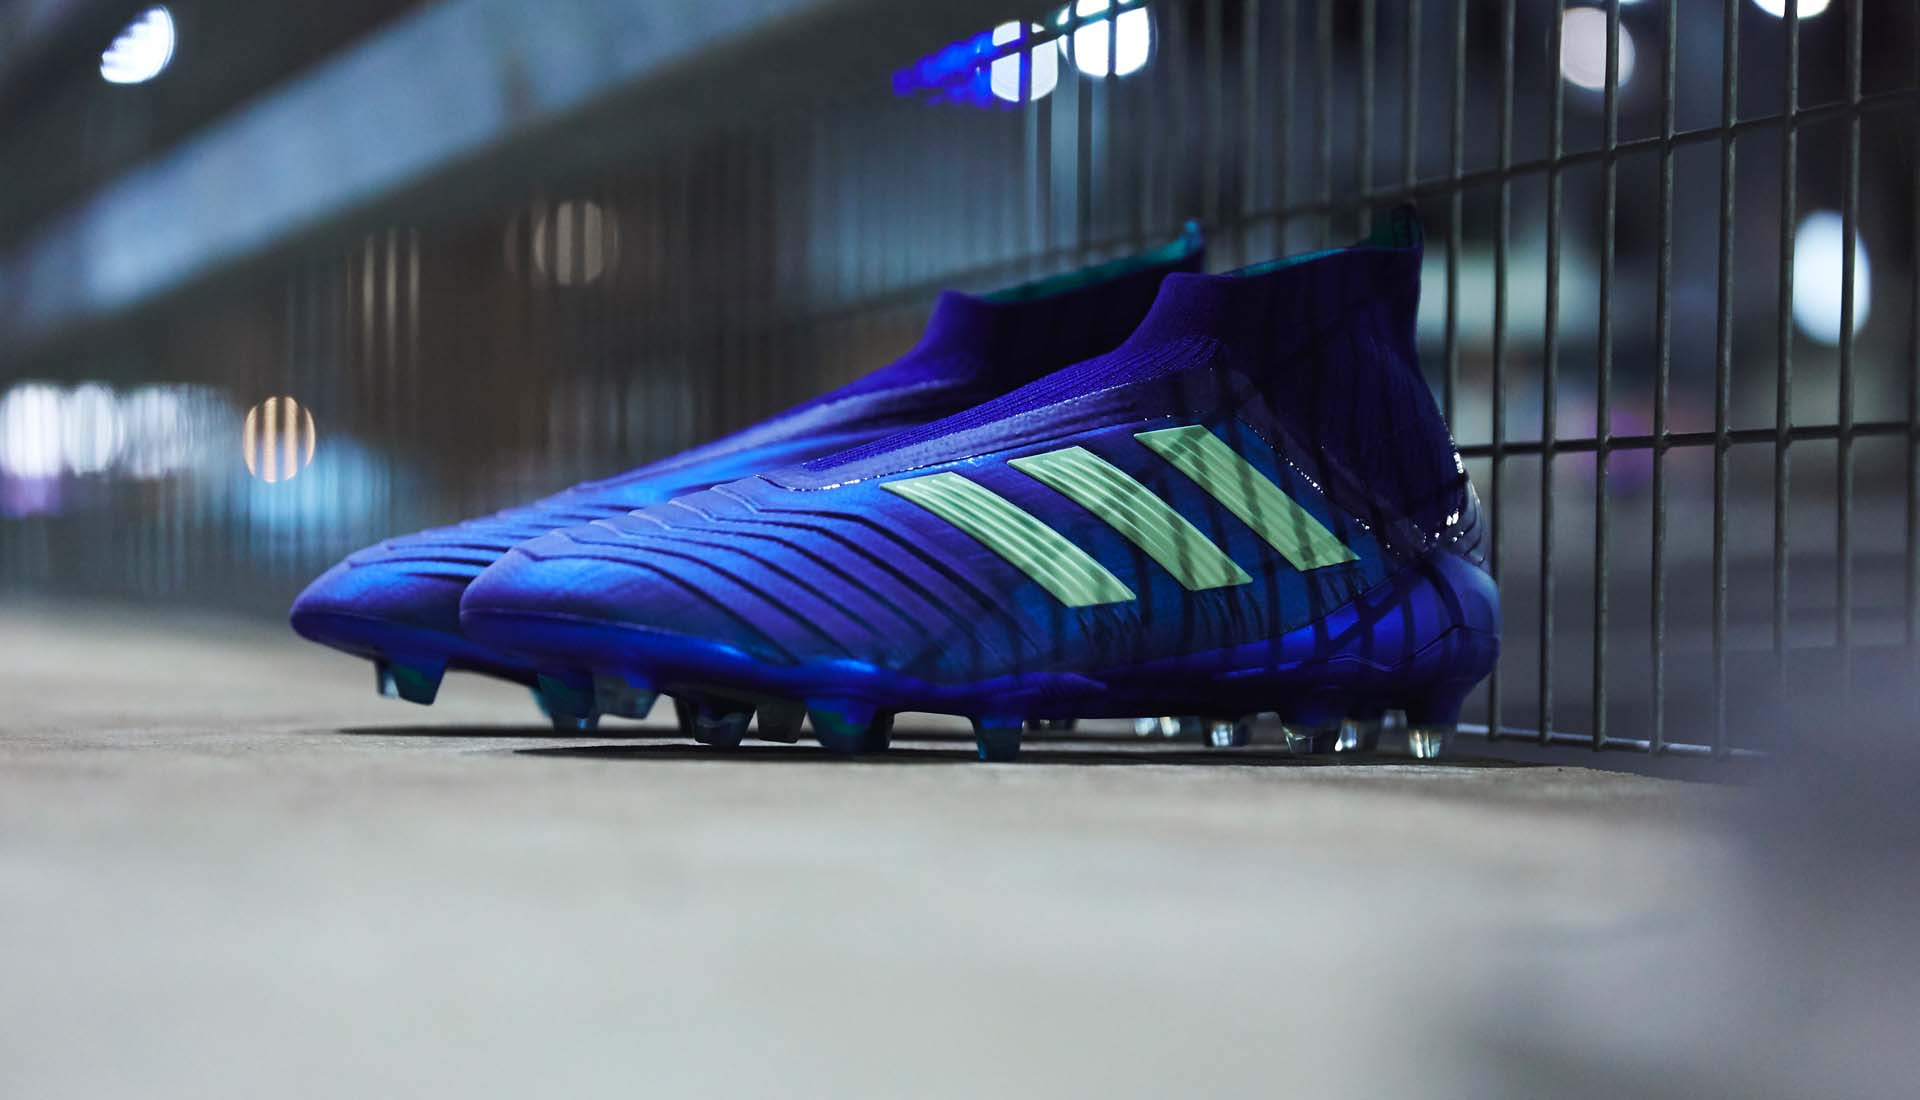 Adidas deadly strike pack predator 18+